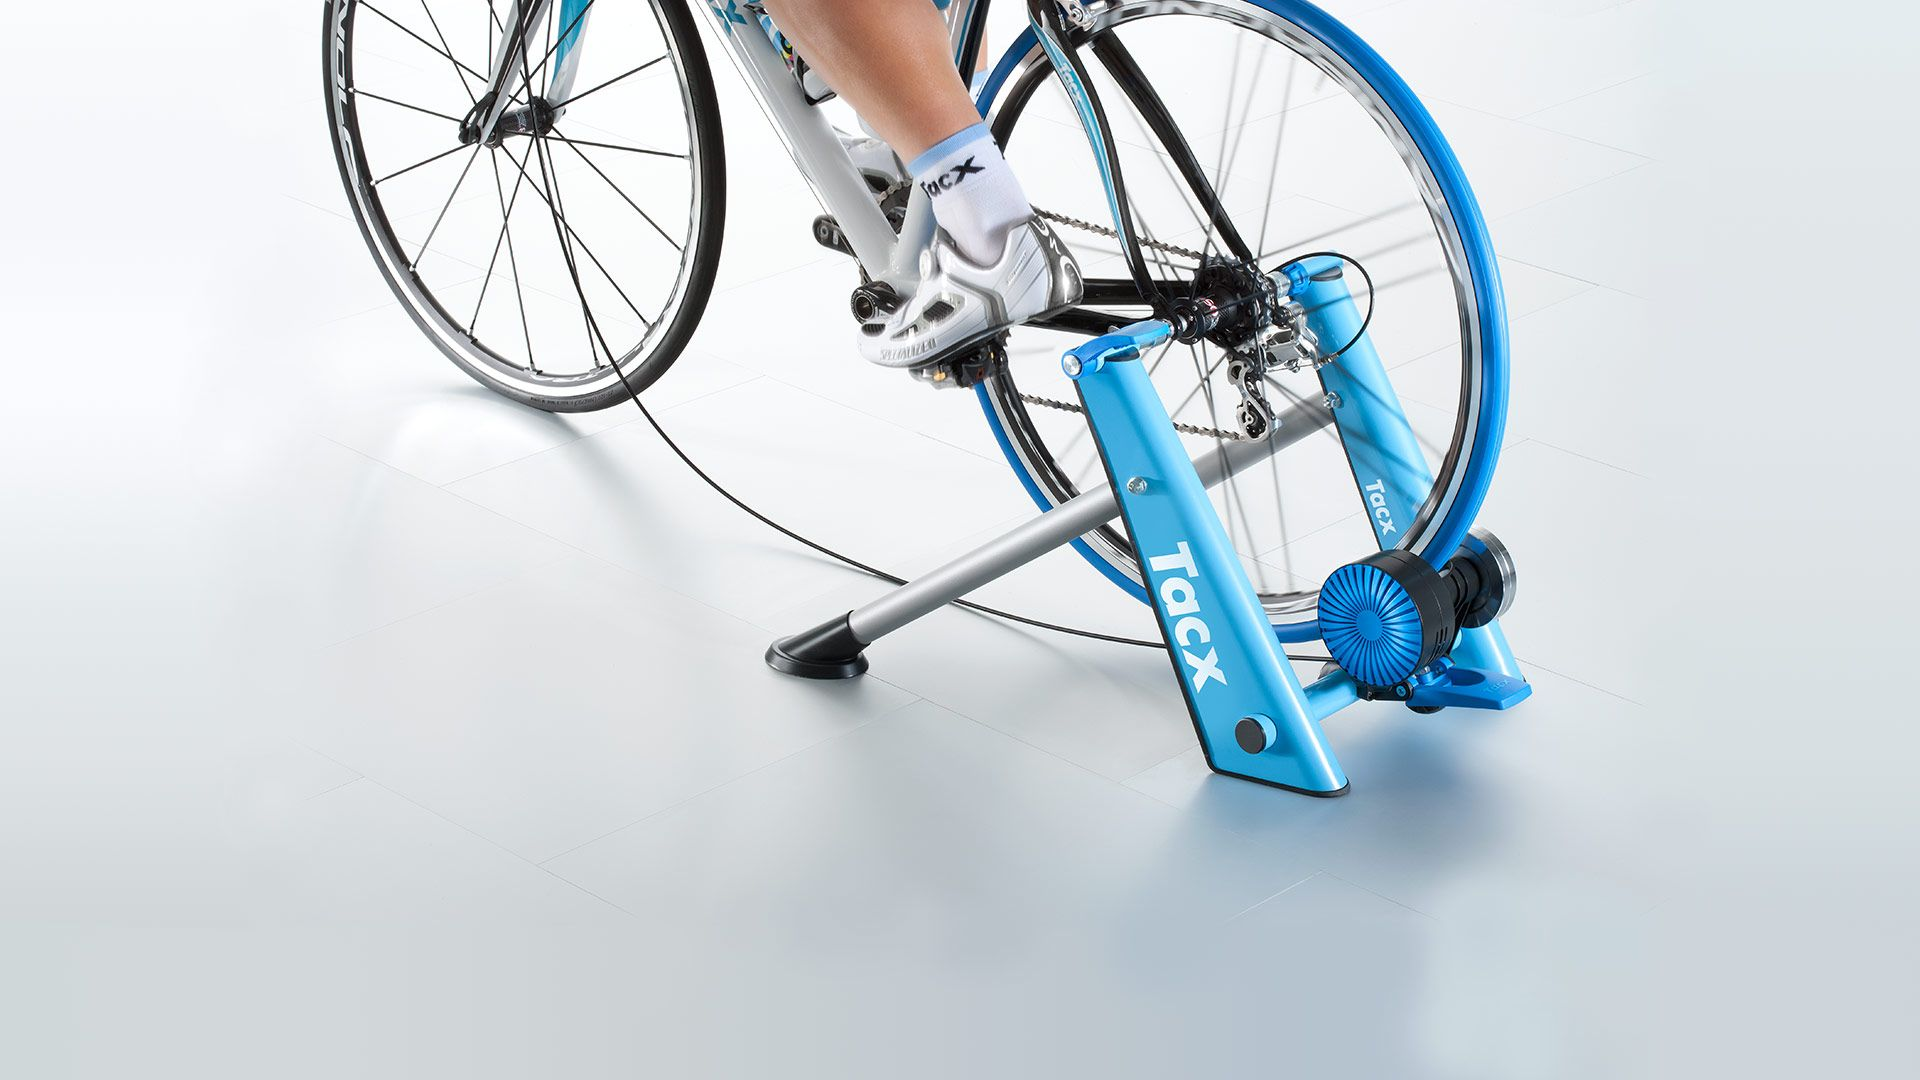 t2650_blue_matic_10_backleft_basic_cycle_trainer_turbo_best_quality_header-1.jpg